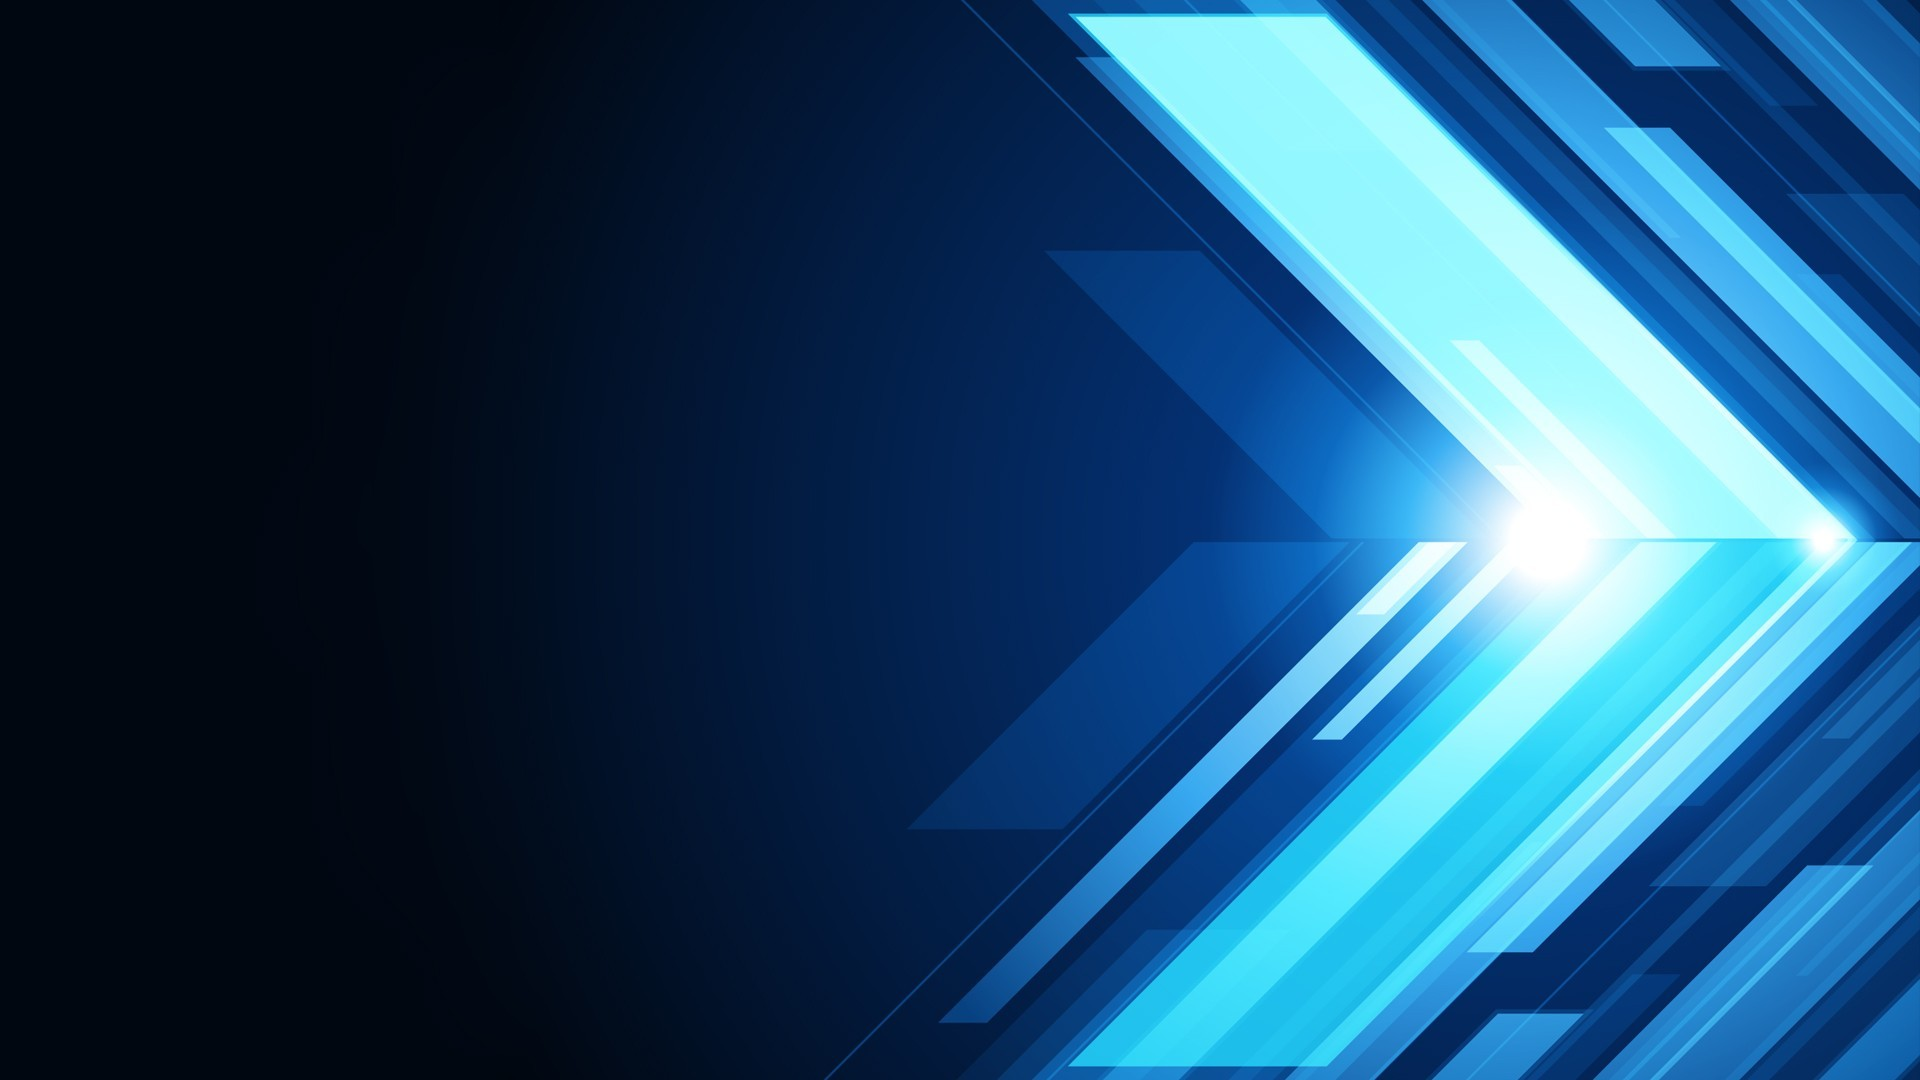 Blue vector arrows graphic art illustrator wallpaper  AllWallpaper.in